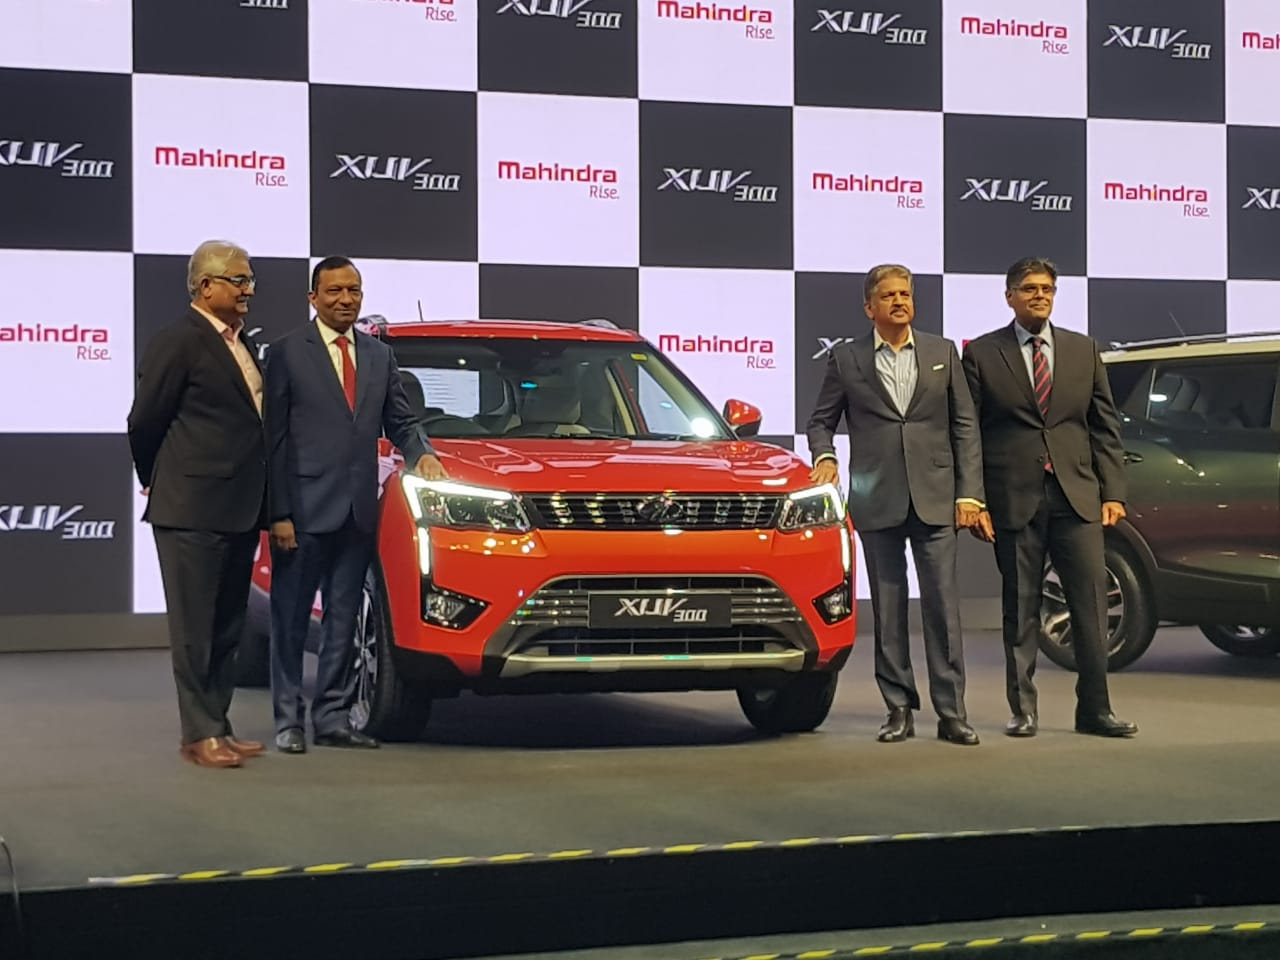 2019 mahindra xuv300 launched in india, priced from rs 7.9 lakh